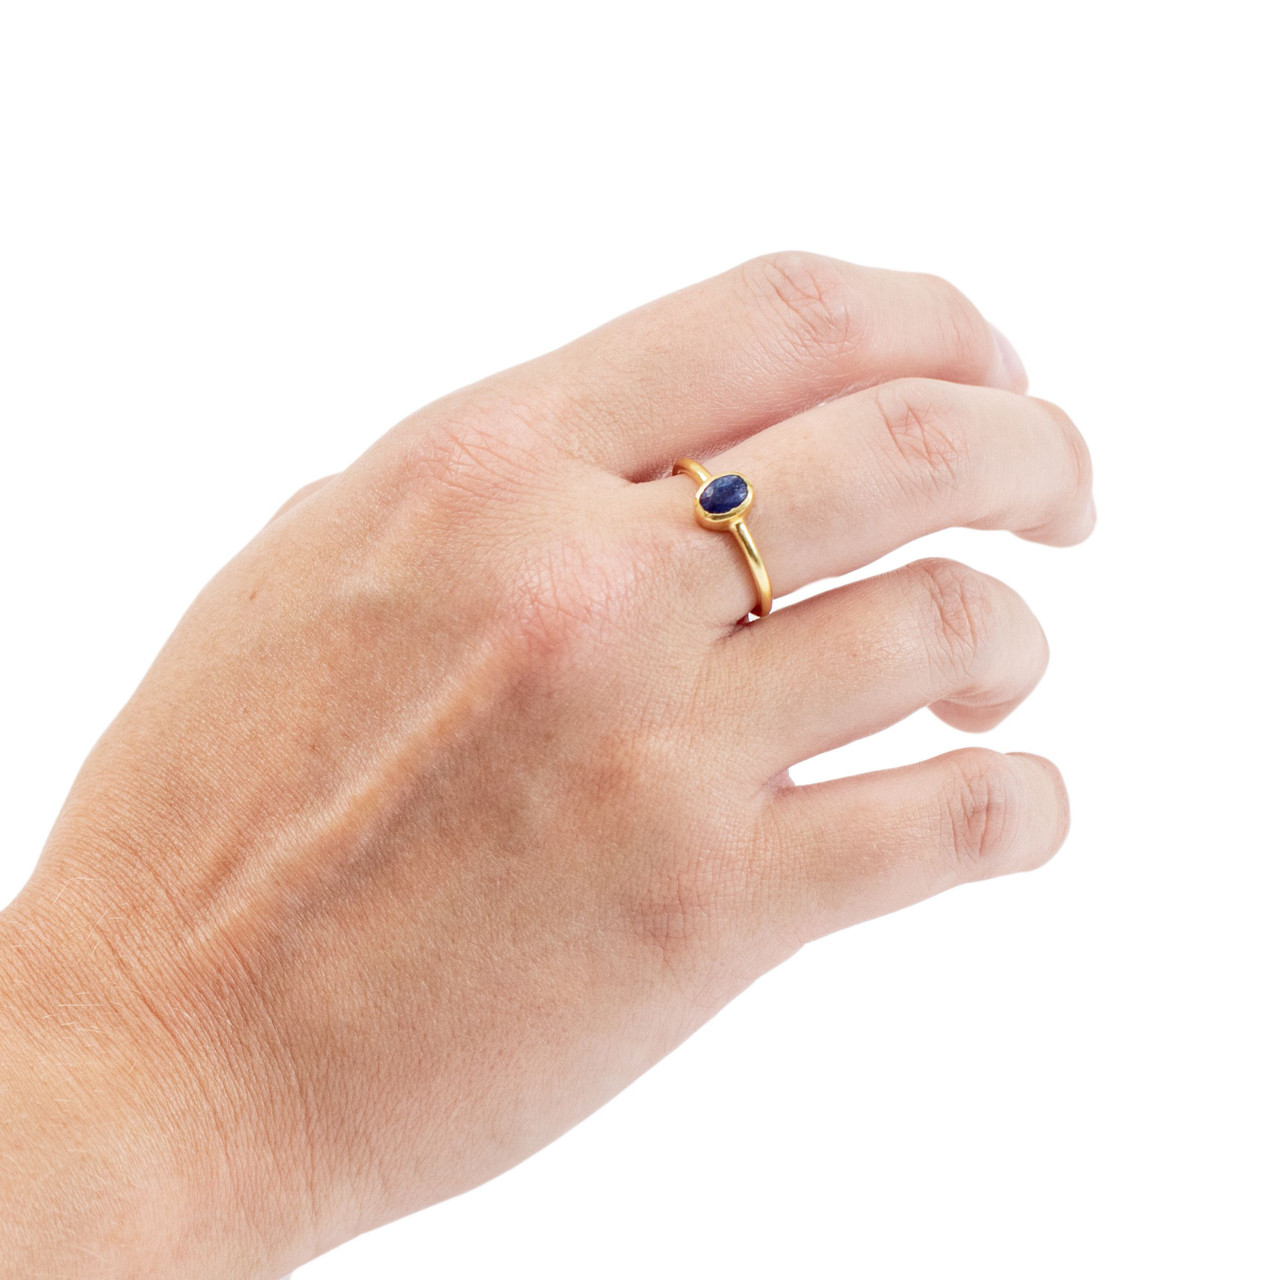 Gold Plated Ring with Blue Sapphire